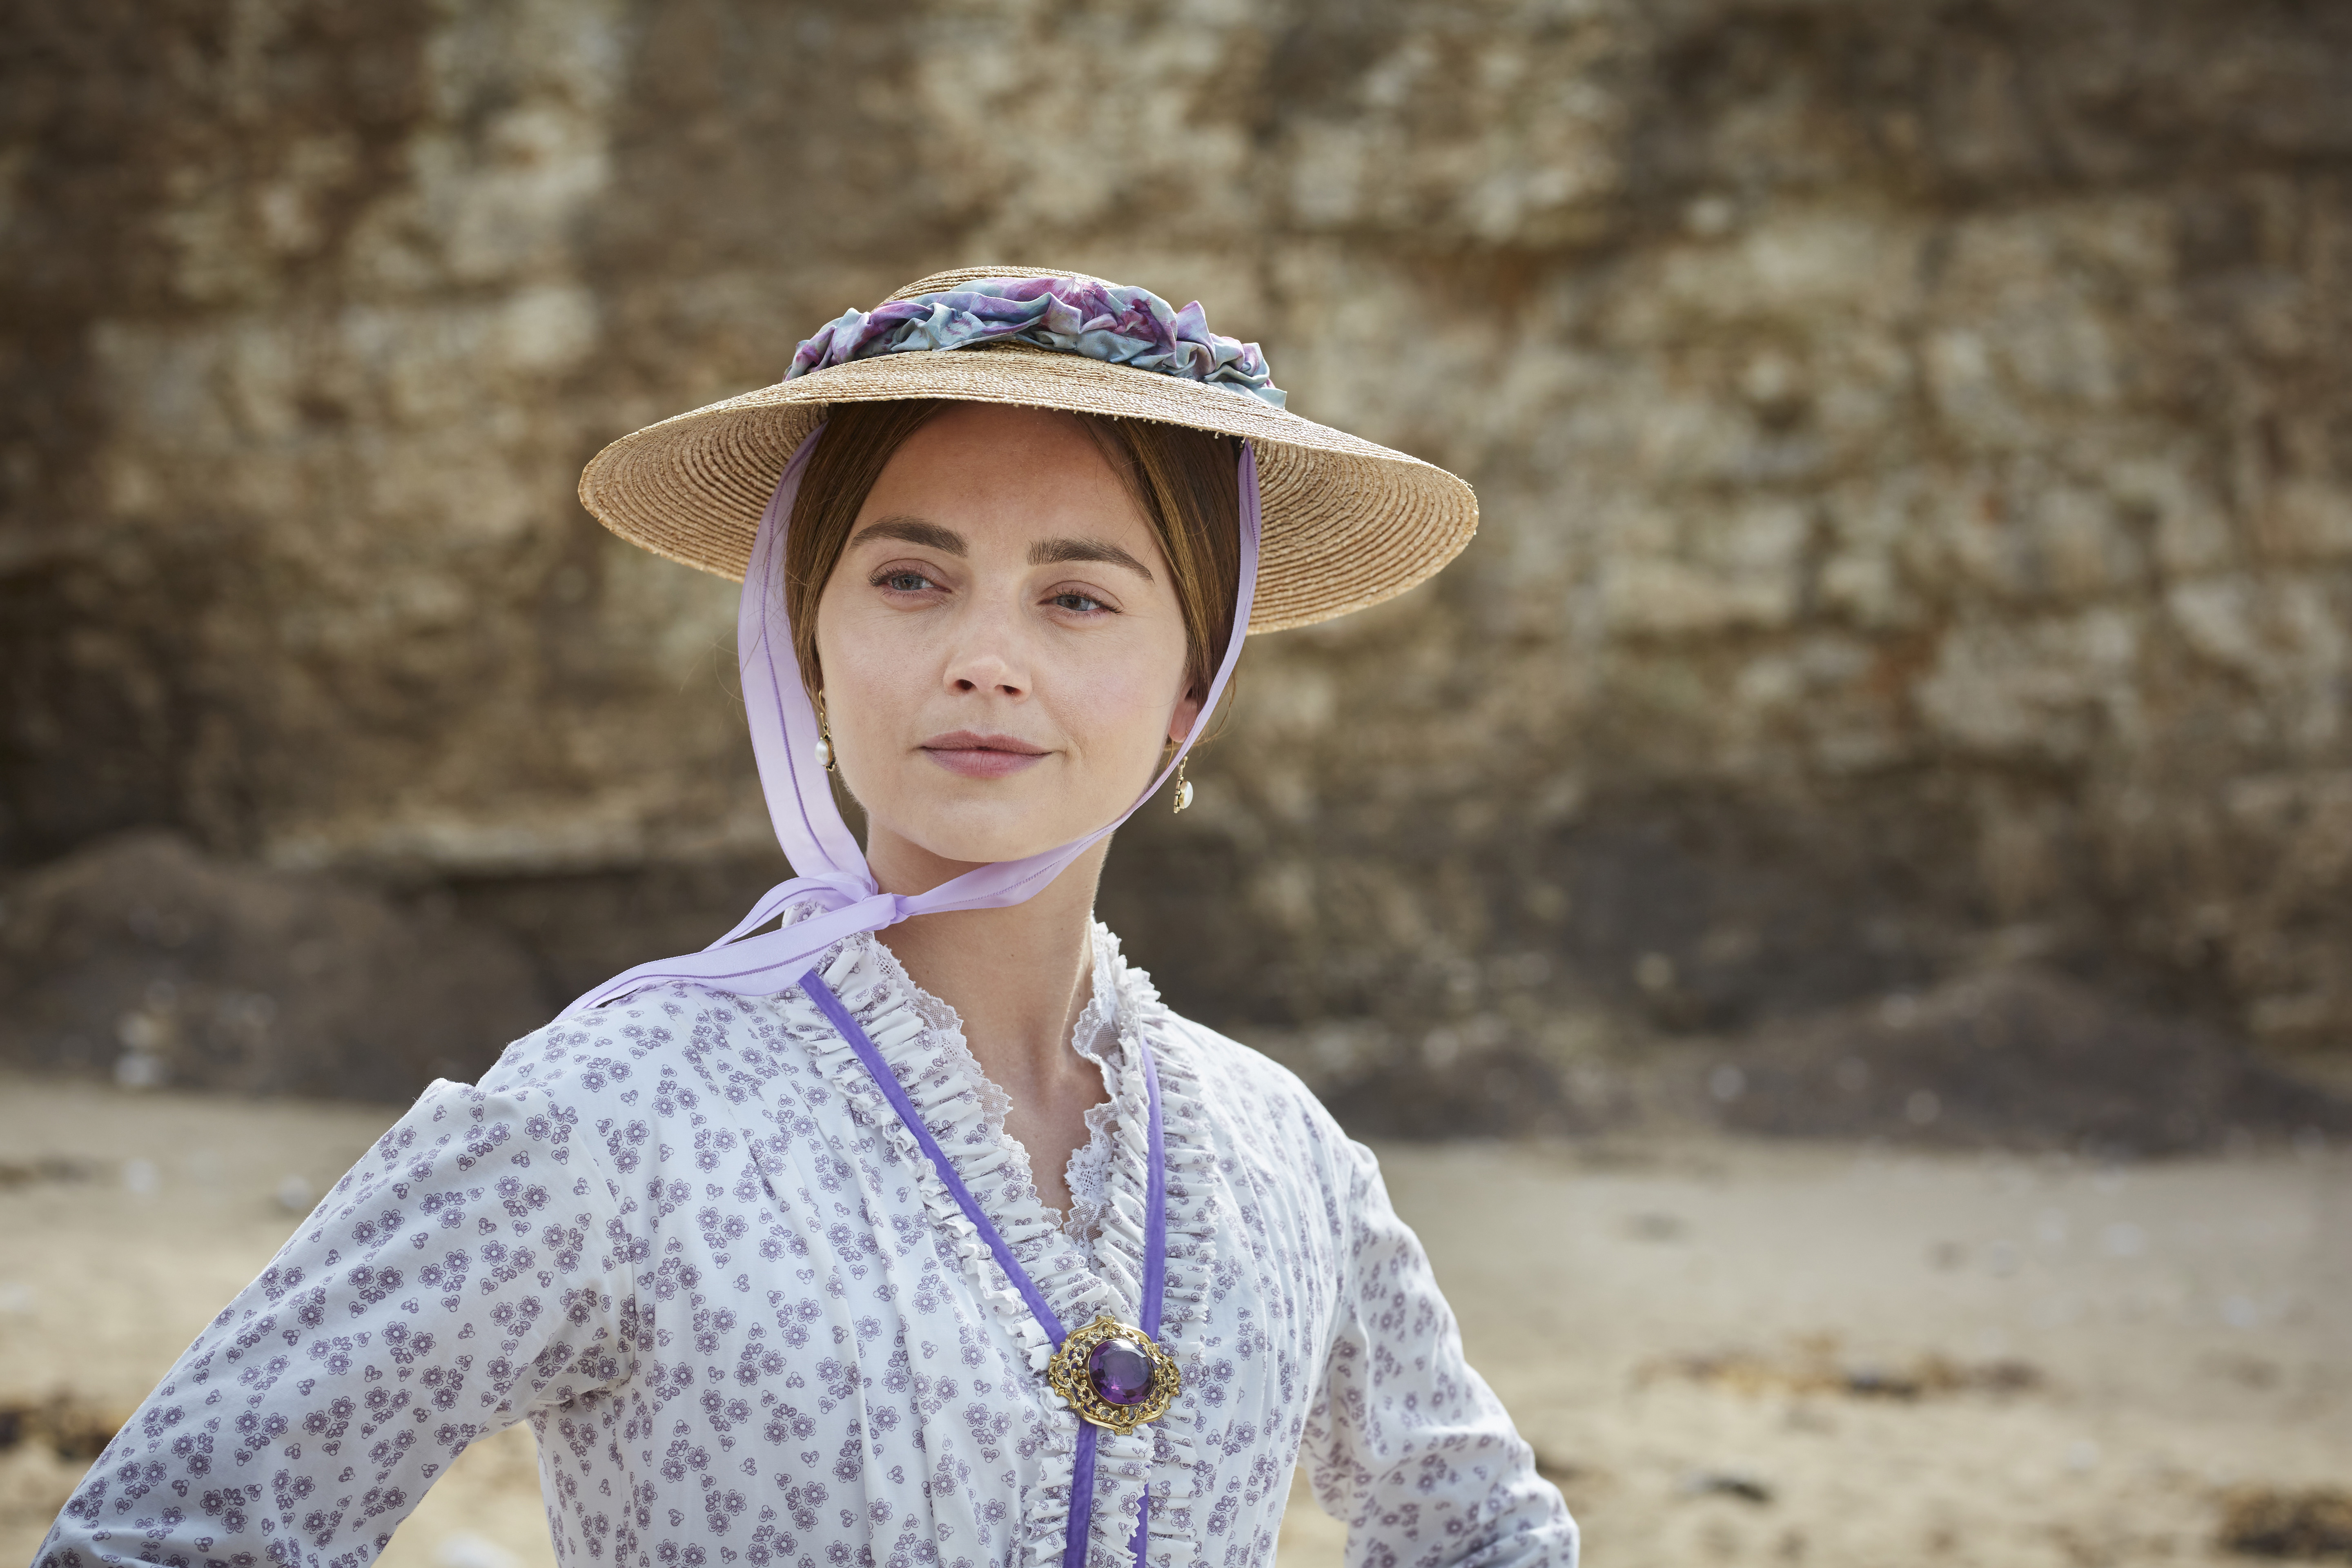 Queen Victoria played by Jenna Coleman